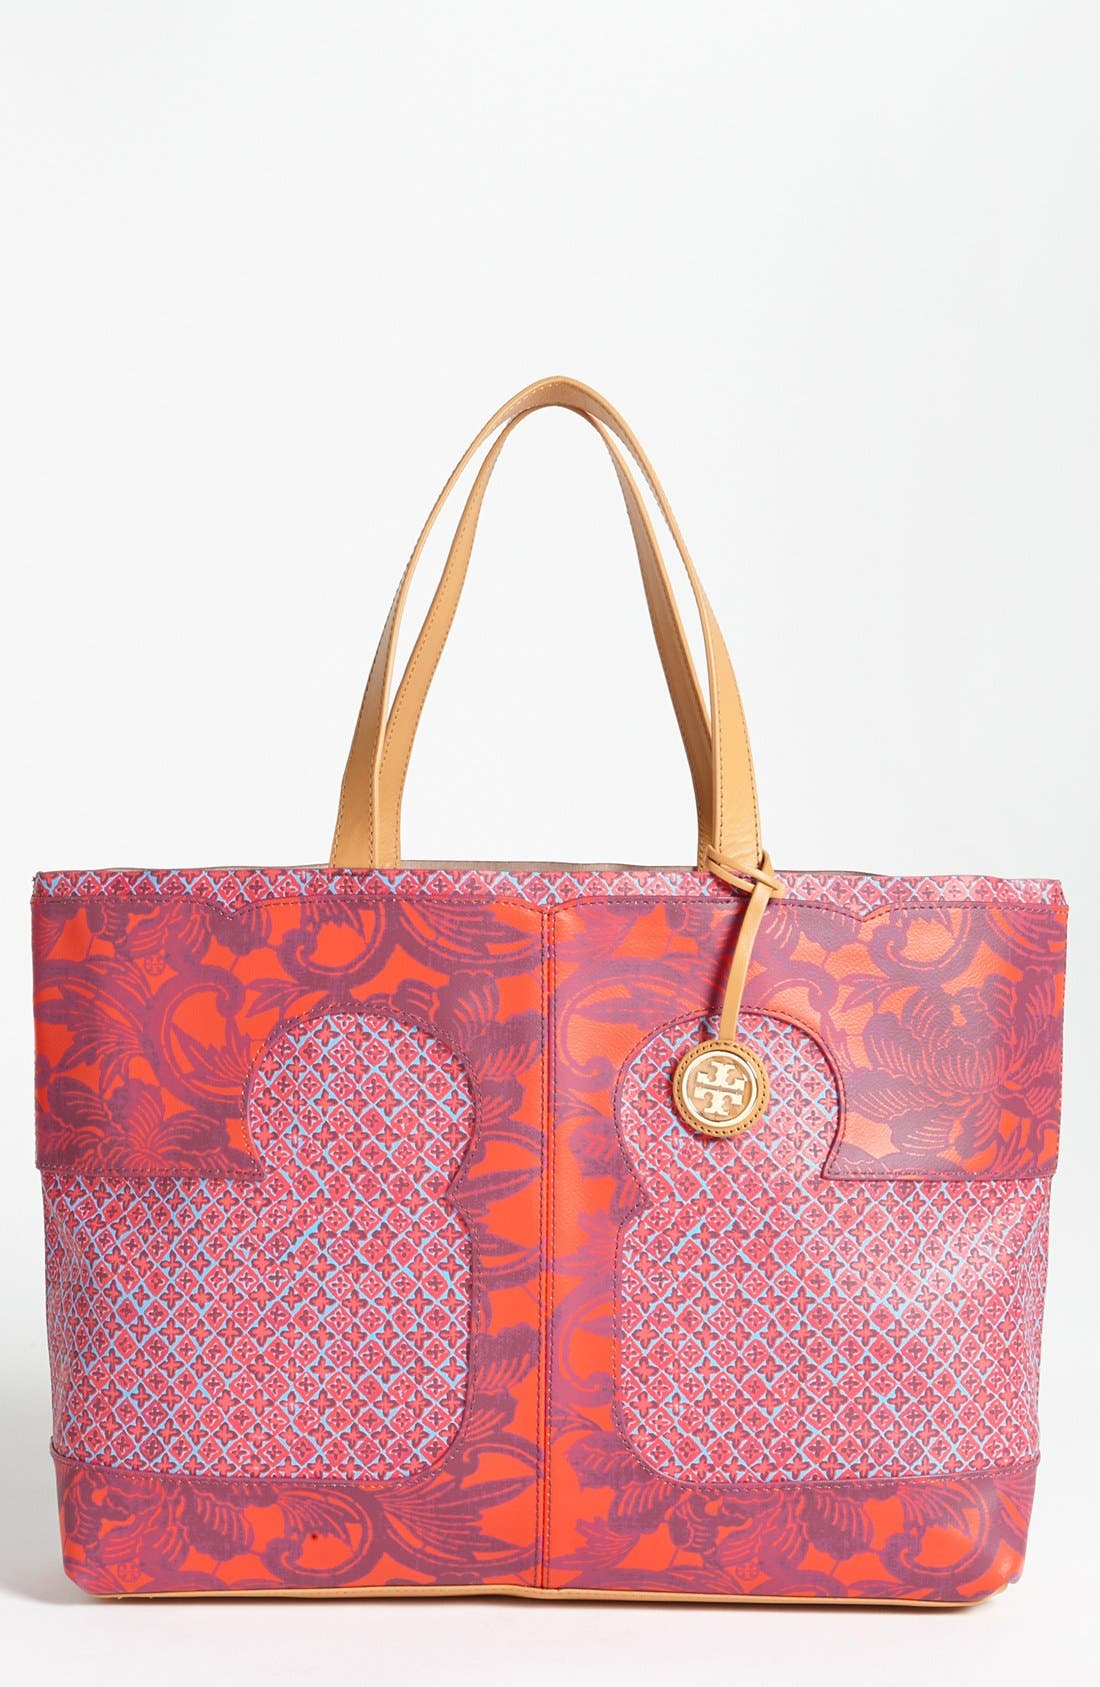 Alternate Image 1 Selected - Tory Burch 'Amalie - Simple' Tote